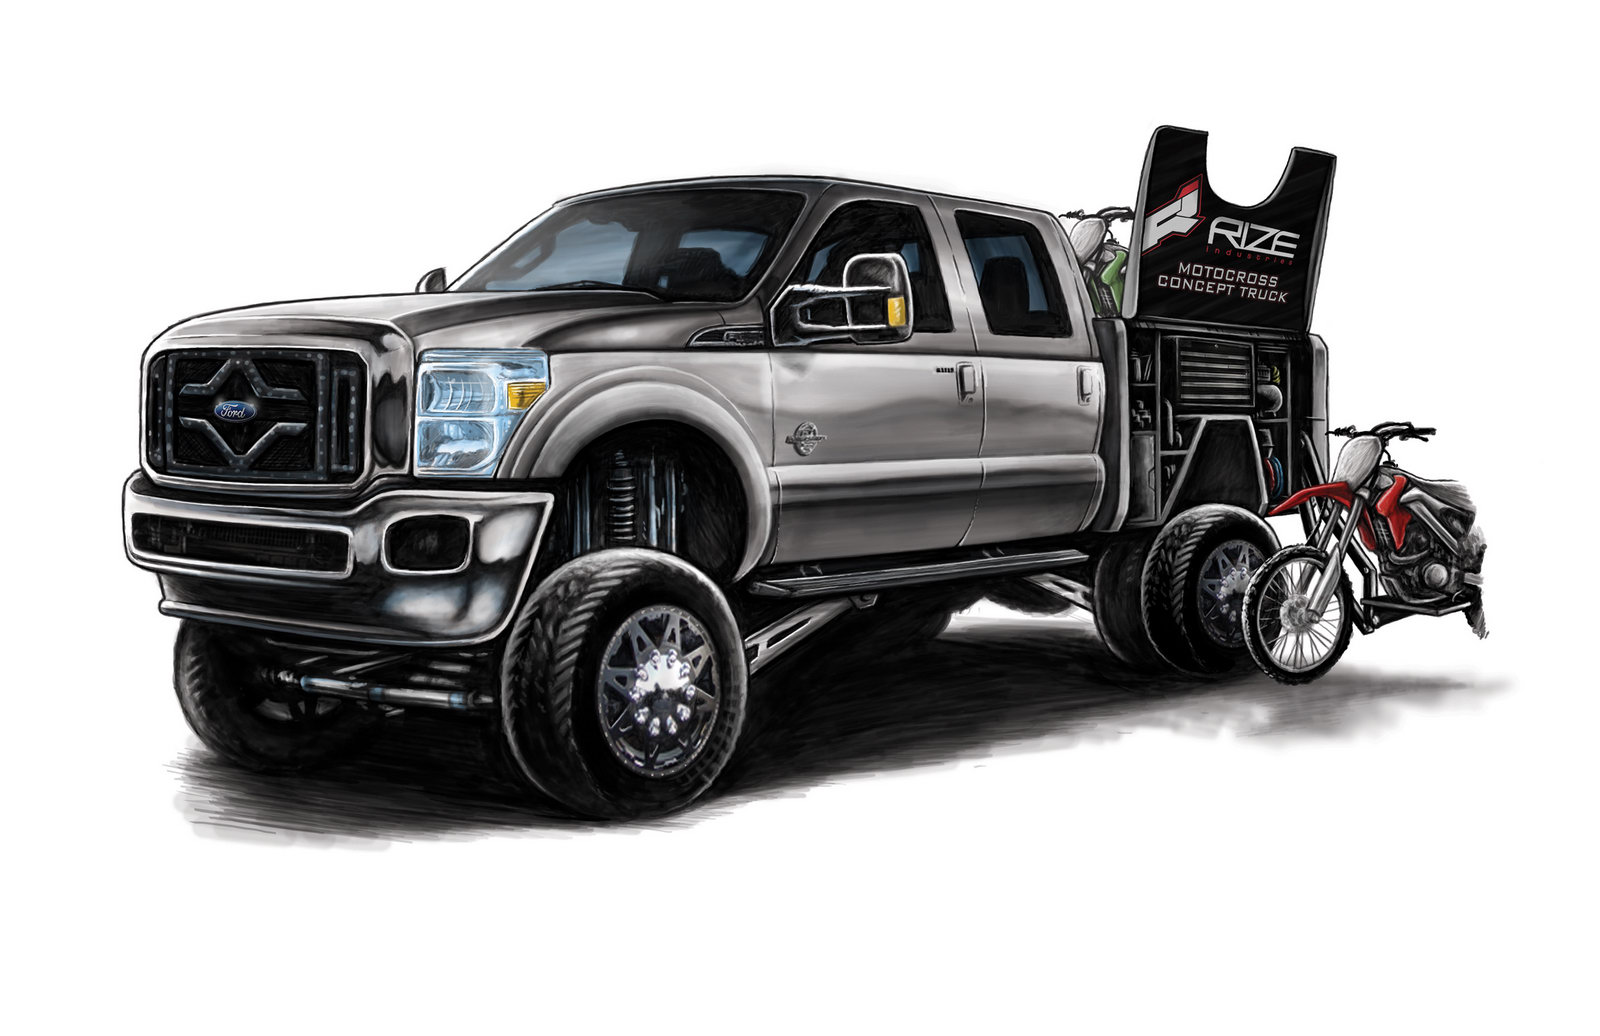 Ford f-series 2015 photo - 5